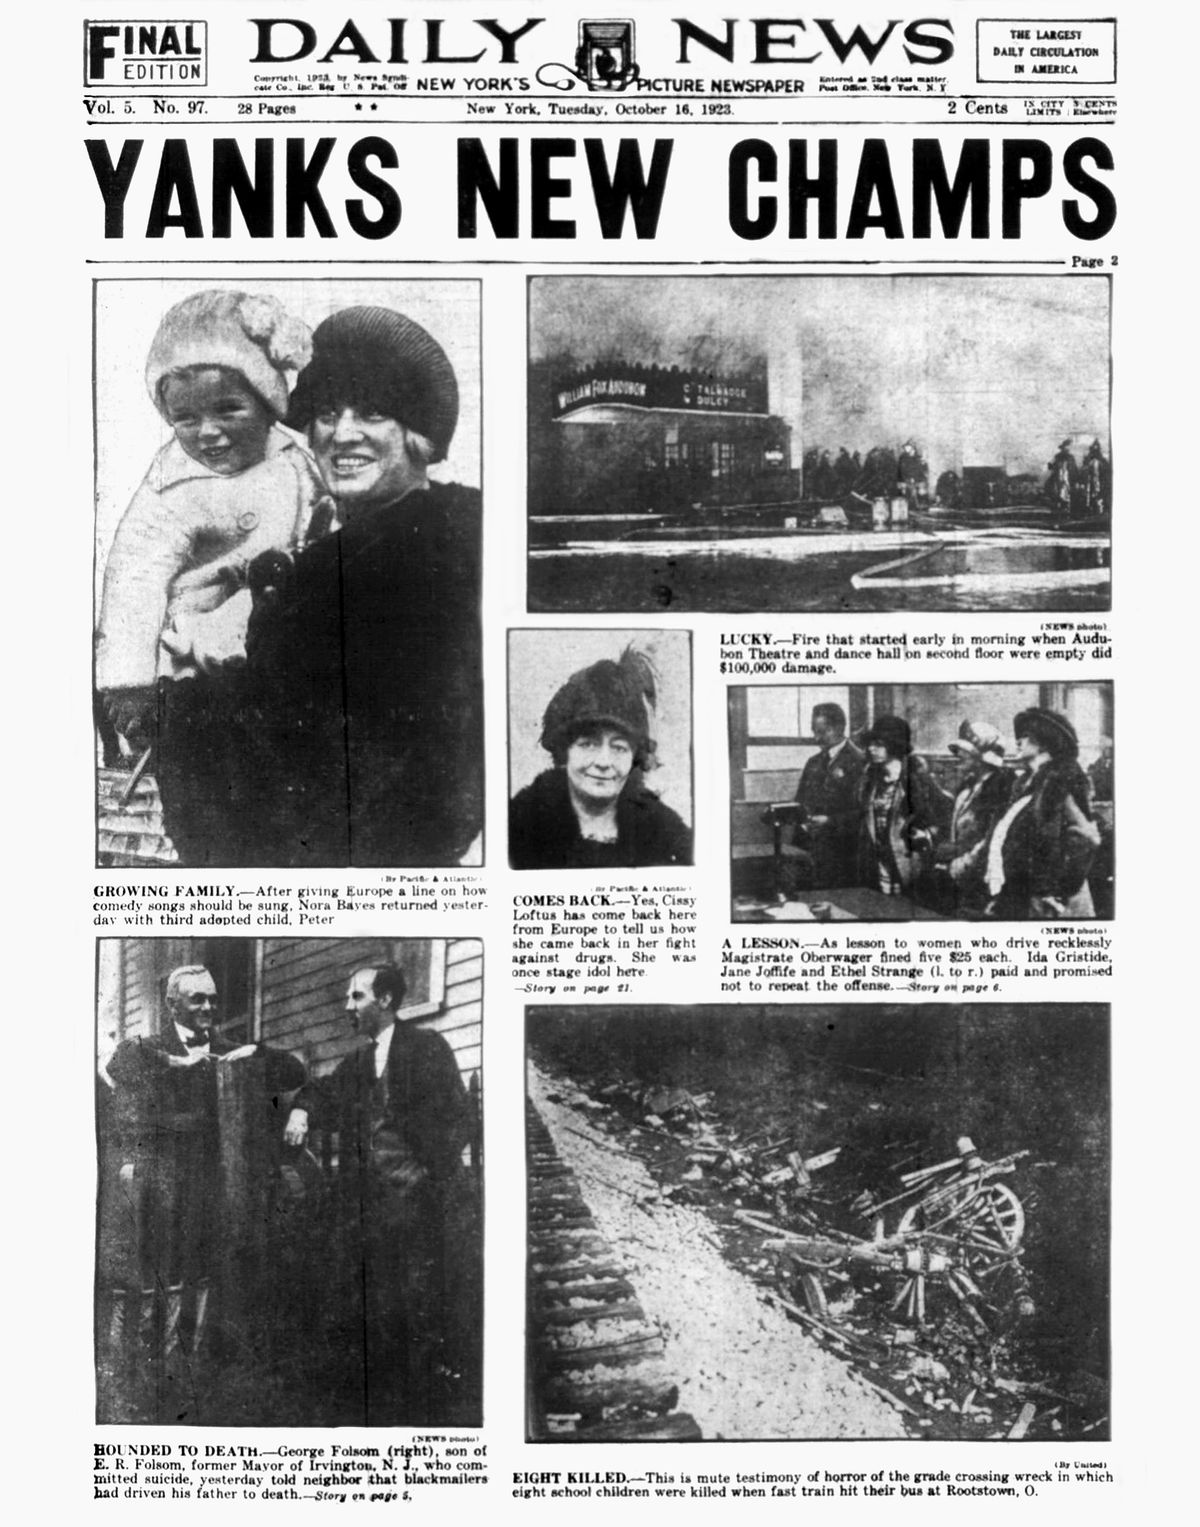 Daily News front page October 16, 1923, Headlines: YANKS